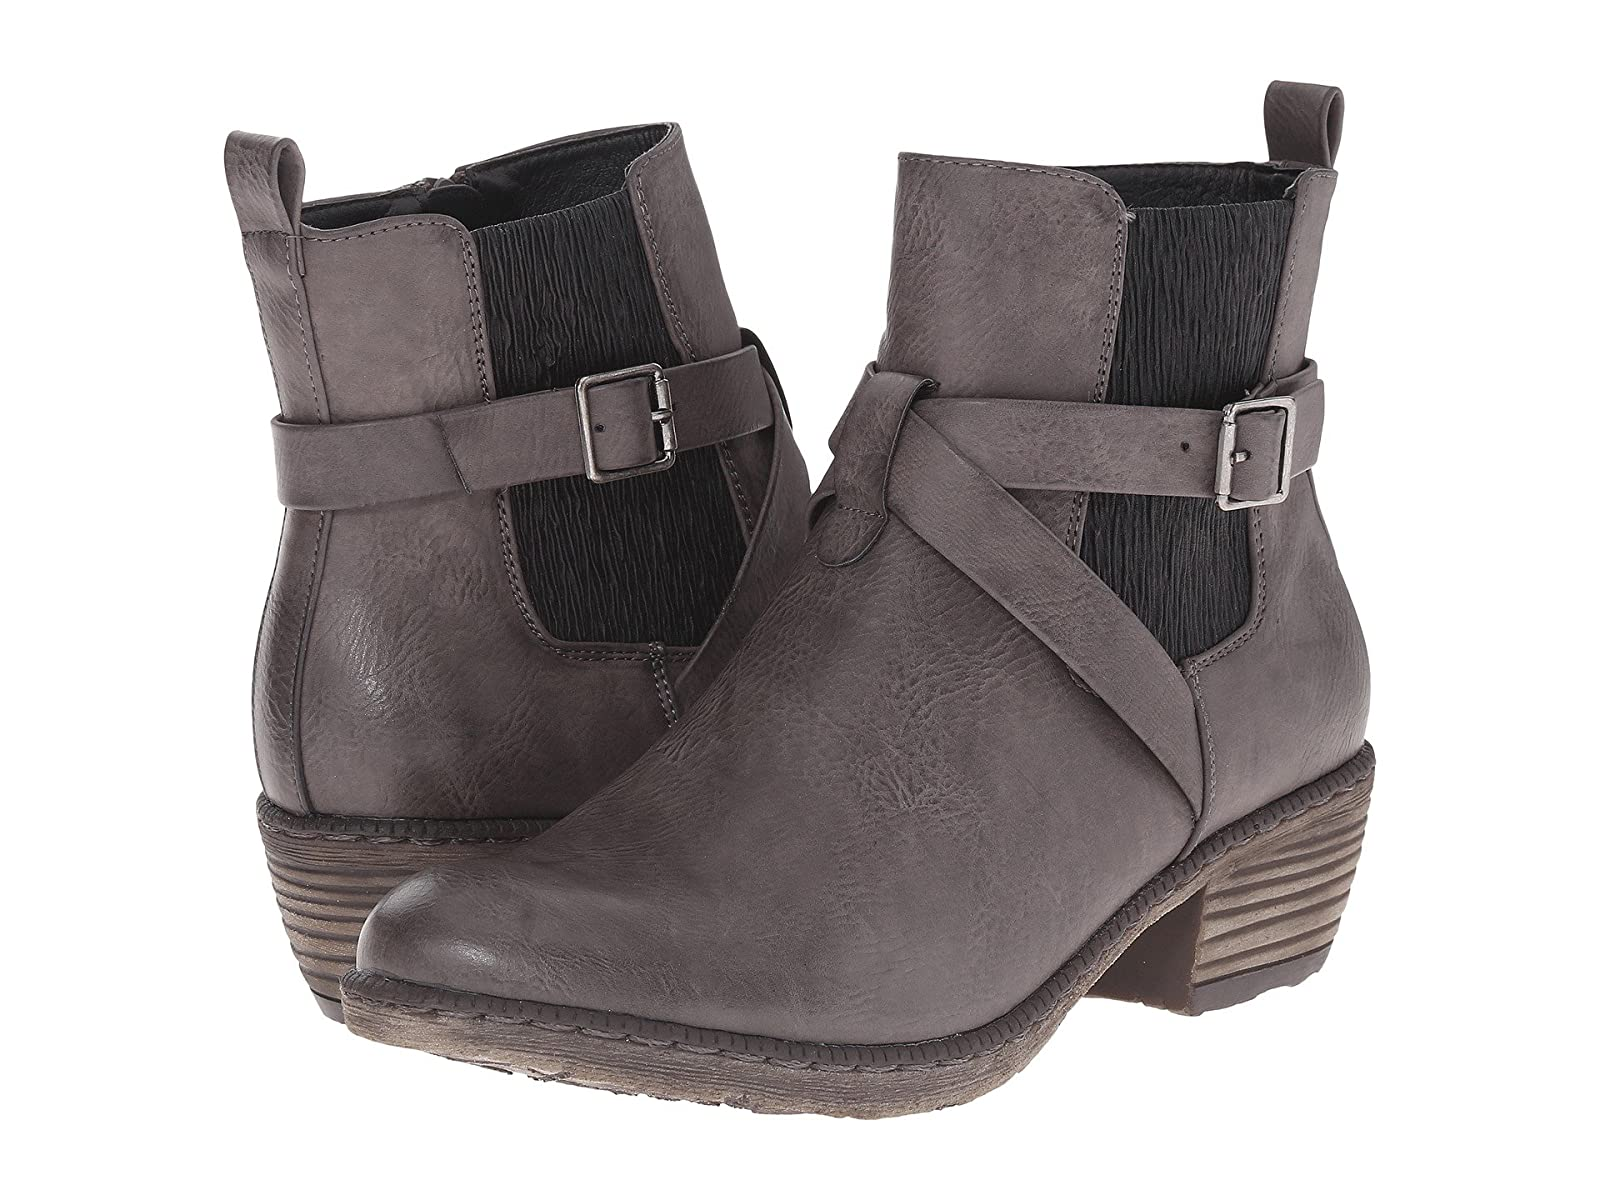 Rieker 93794Cheap and distinctive eye-catching shoes